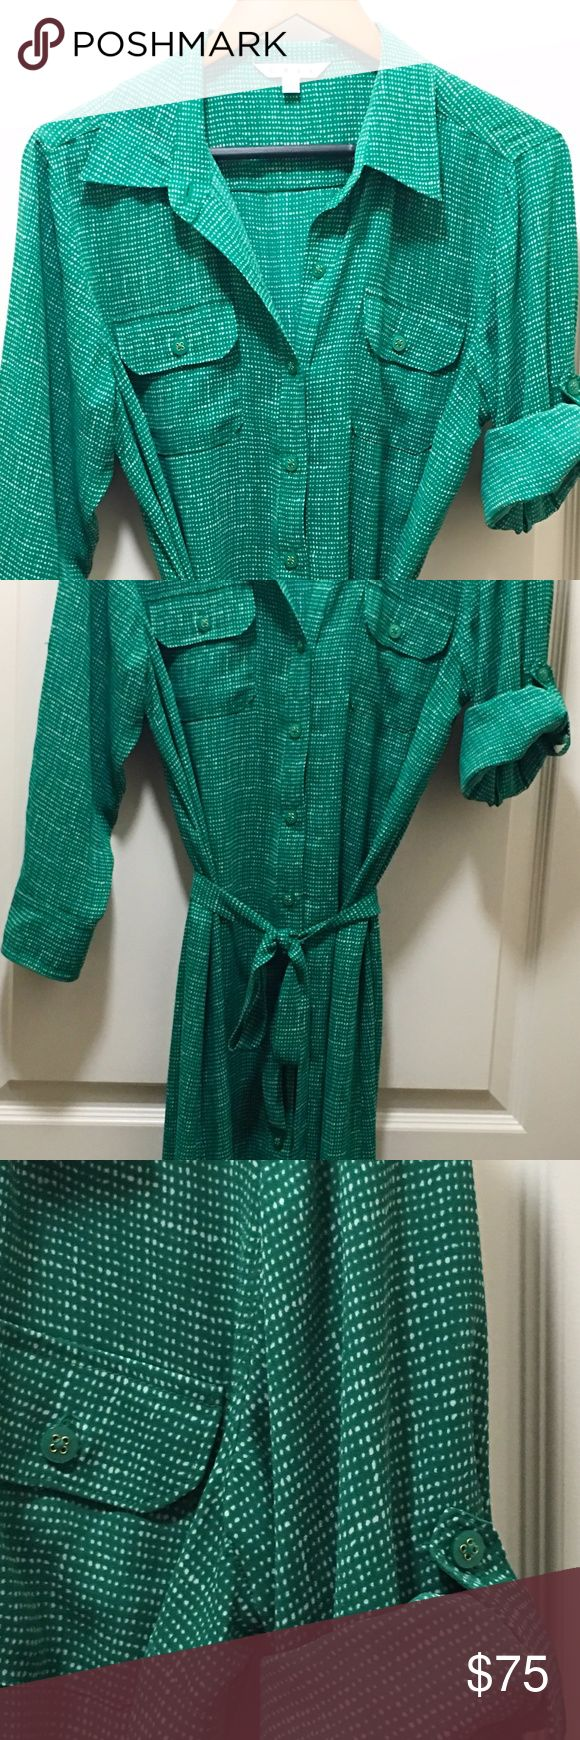 Cabi Emerald Green Shirt Dress Button up shirt dress with 3/4 sleeves when worn down or can be rolled up and secured with a button tab.  Comes with a tie. Can be worn at the office or on the weekends with jeans.  Never worn but tags have been removed. CAbi Dresses